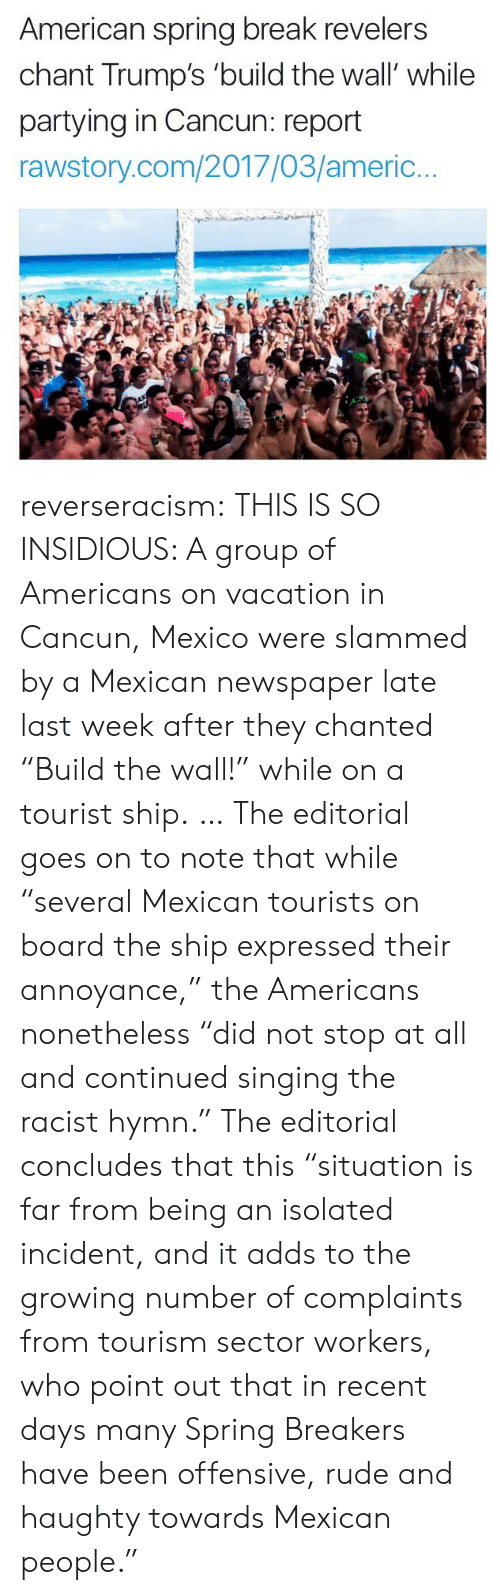 """insidious: American spring break revelers  chant Trump's 'build the wall' while  partying in Cancun: report  rawstory.com/2017/03/americ.. reverseracism: THIS IS SO INSIDIOUS:   A group of Americans on vacation in Cancun, Mexico were slammed by a Mexican newspaper late last week after they chanted """"Build the wall!"""" while on a tourist ship.  … The editorial goes on to note that while """"several Mexican tourists on board the ship expressed their annoyance,"""" the Americans nonetheless """"did not stop at all and continued singing the racist hymn.""""  The editorial concludes that this """"situation is far from being an isolated incident, and it adds to the growing number of complaints from tourism sector workers, who point out that in recent days many Spring Breakers have been offensive, rude and haughty towards Mexican people."""""""